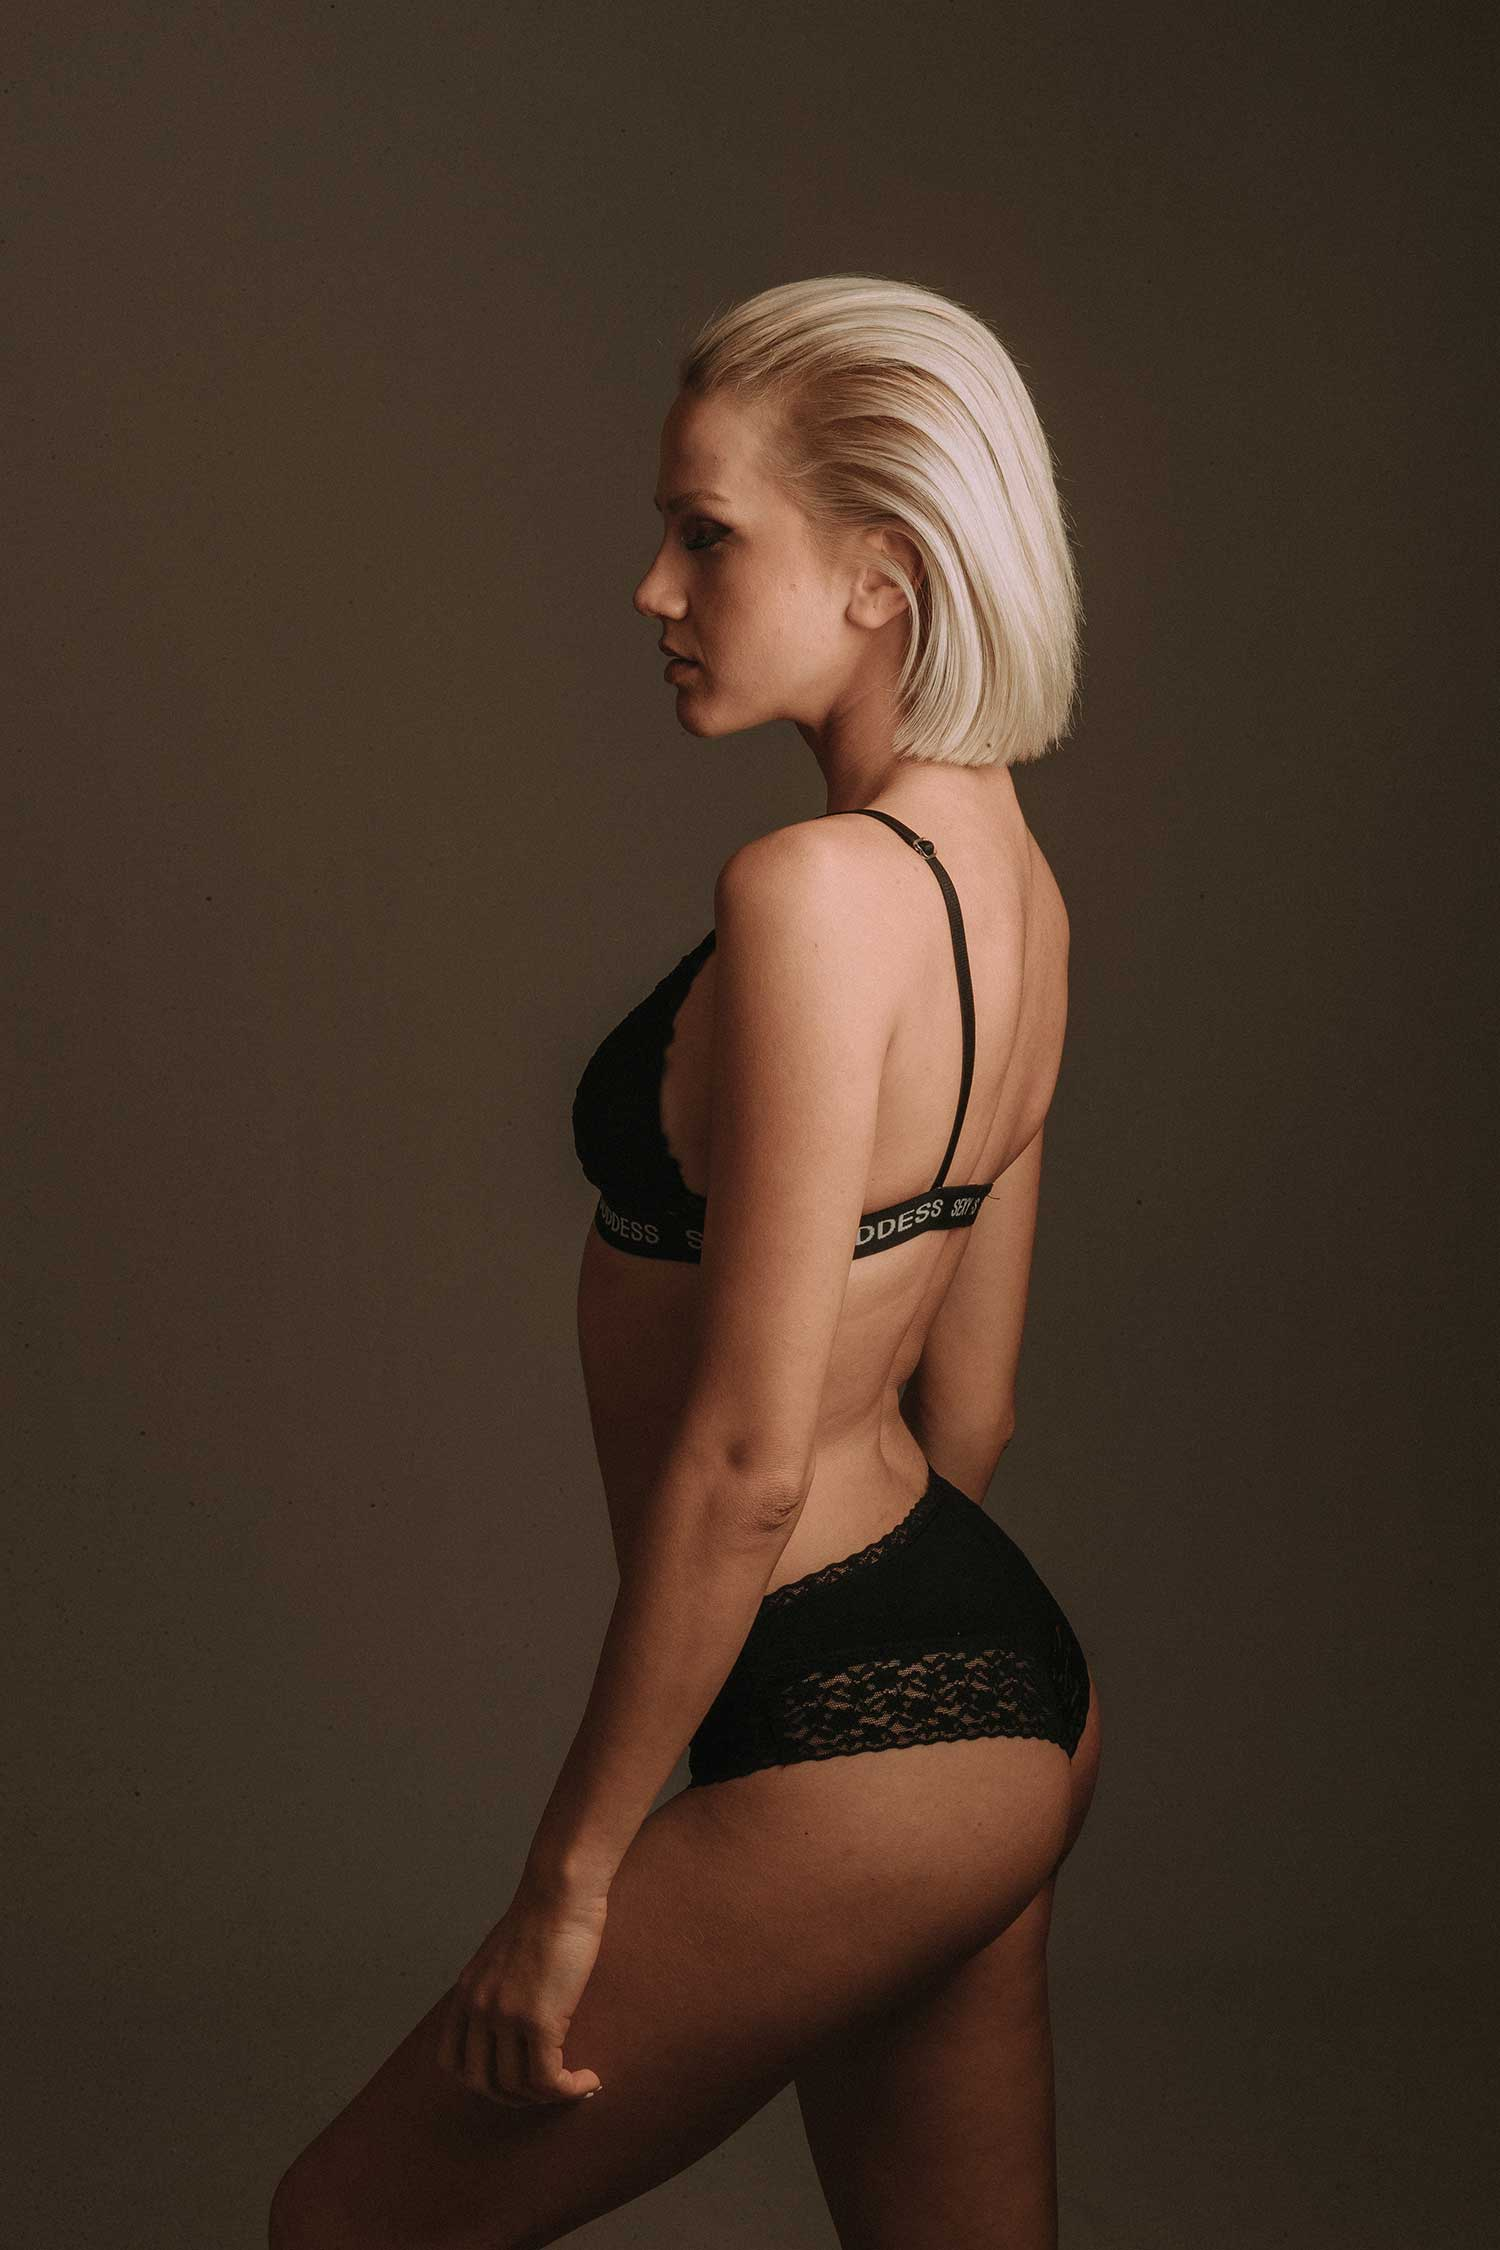 Blonde girl feeling confident about her body